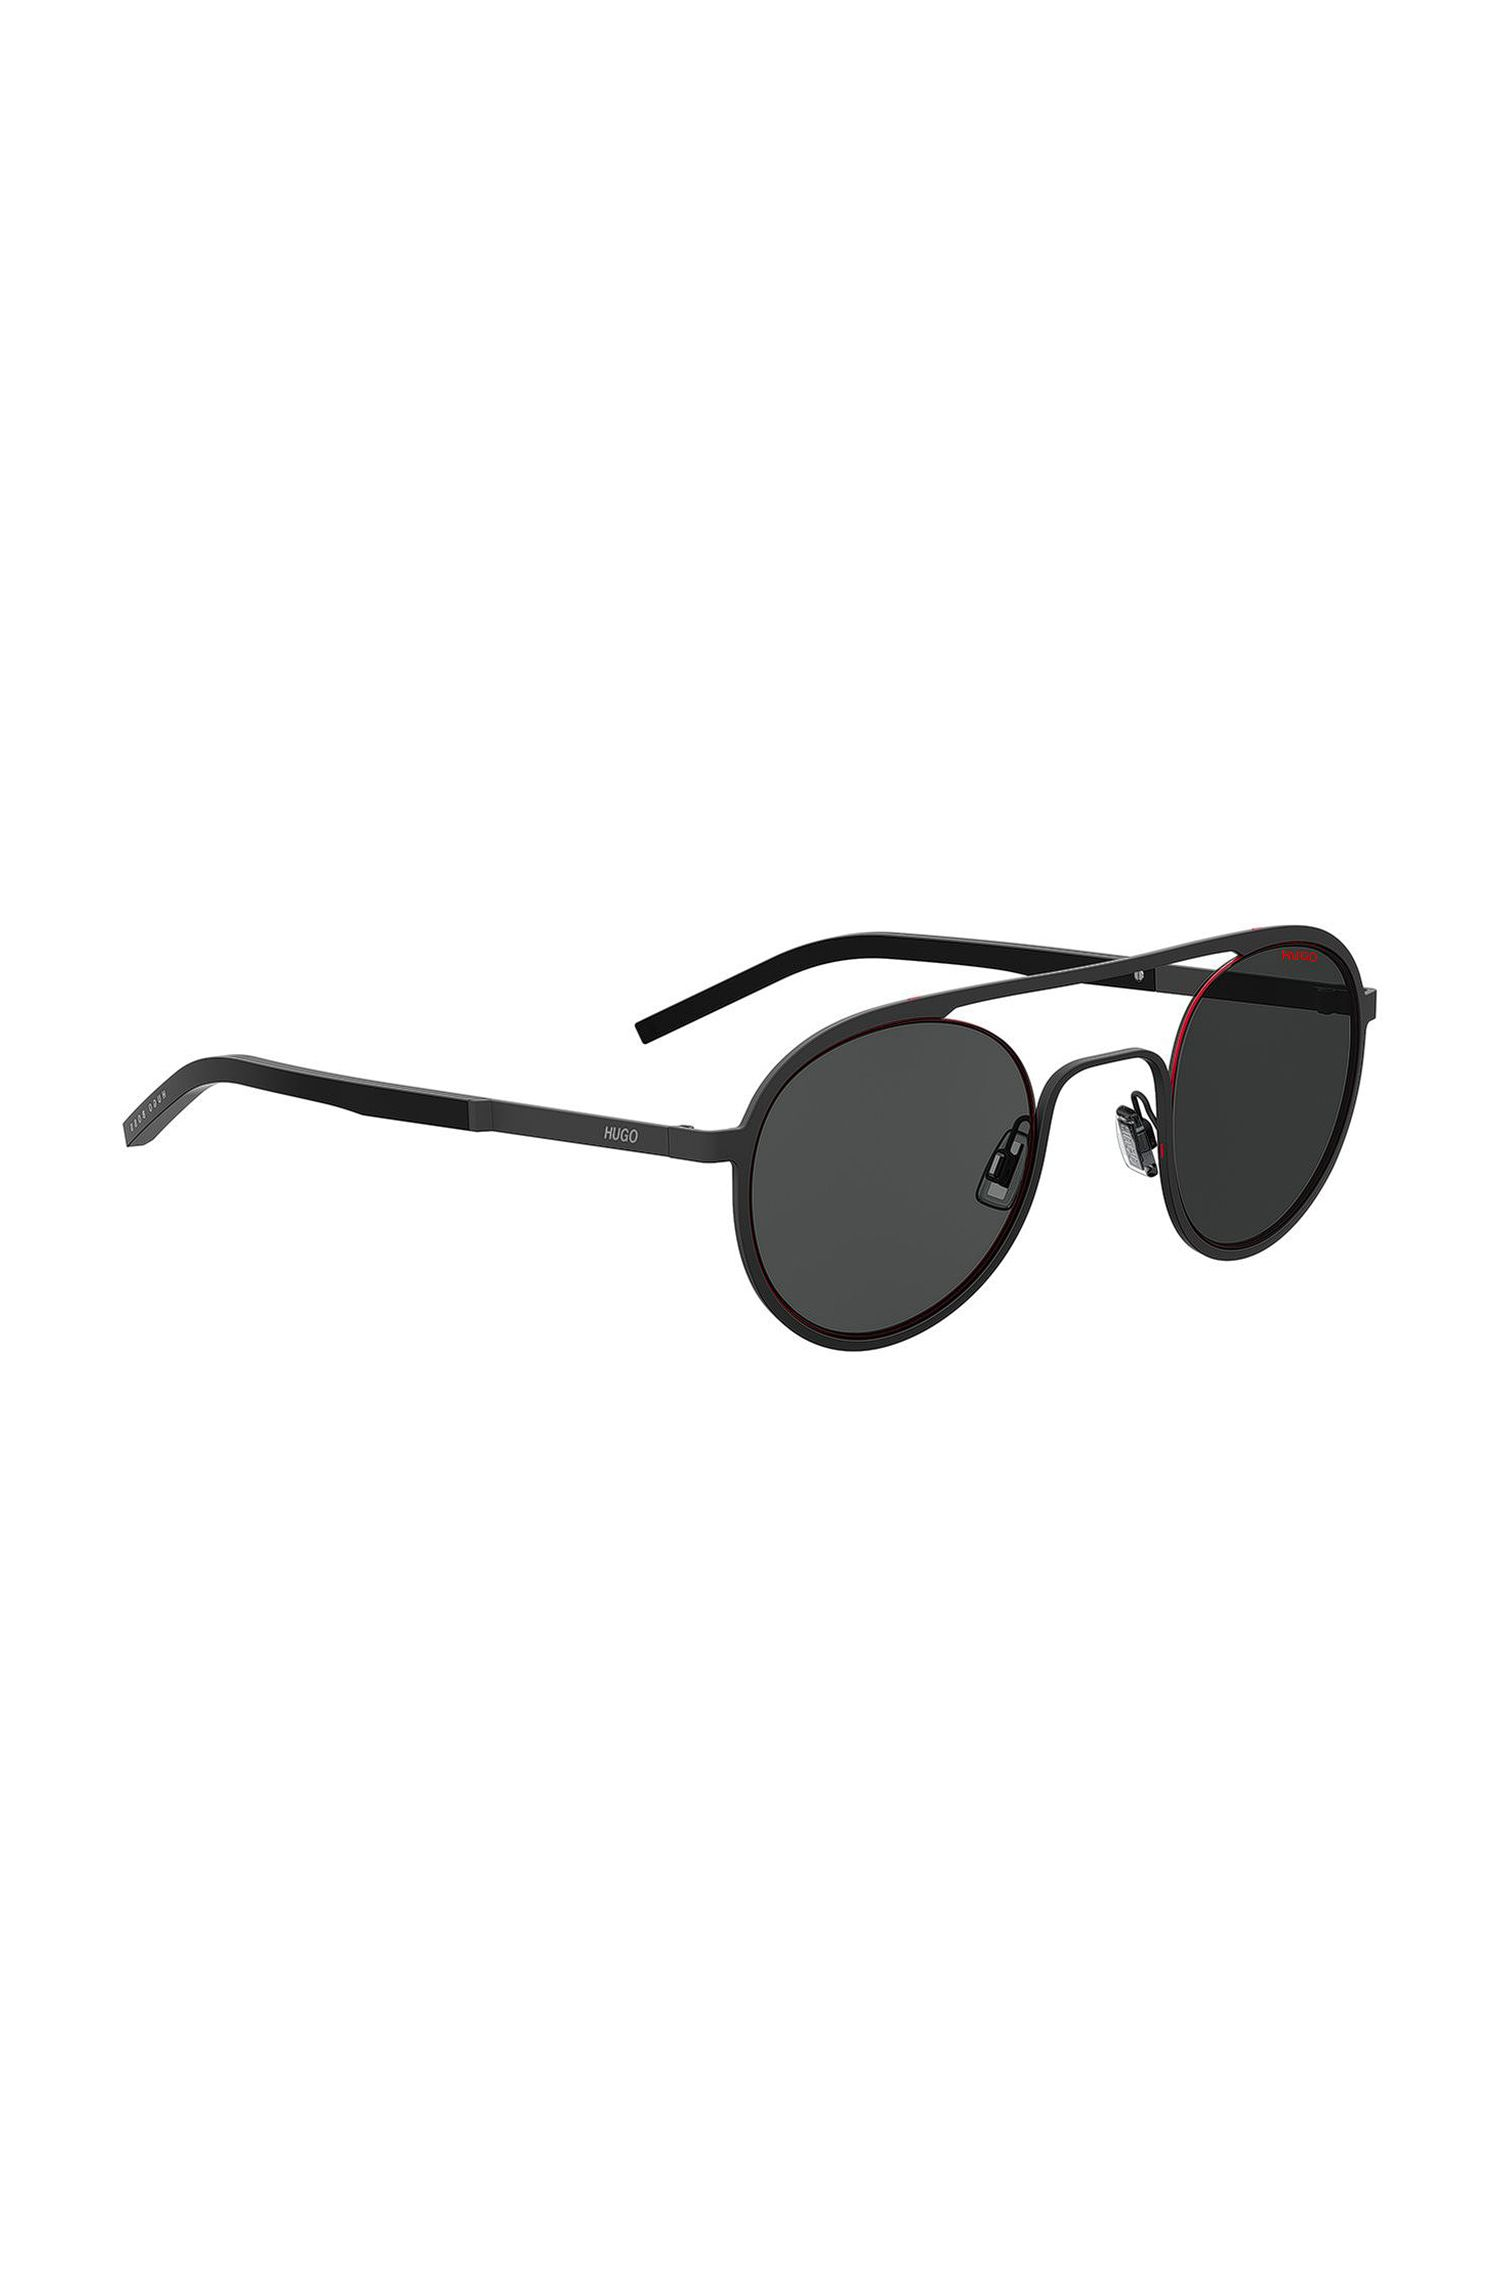 Unisex round sunglasses with black metal frames, Assorted-Pre-Pack